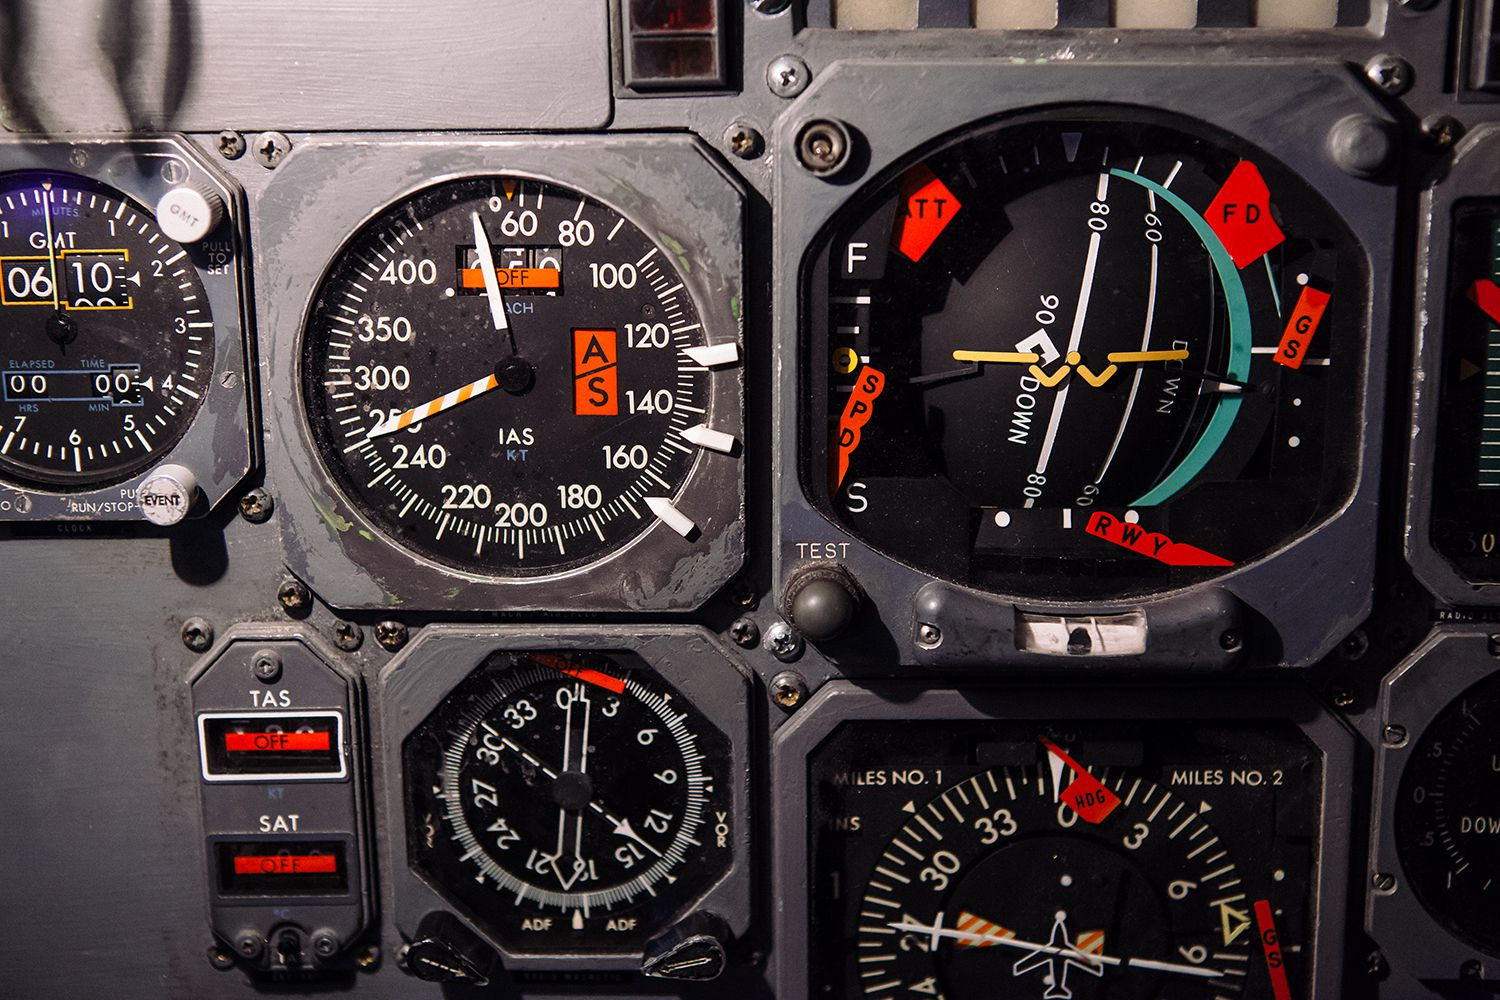 The Altimeter: A Basic but Very Important Flight Instrument